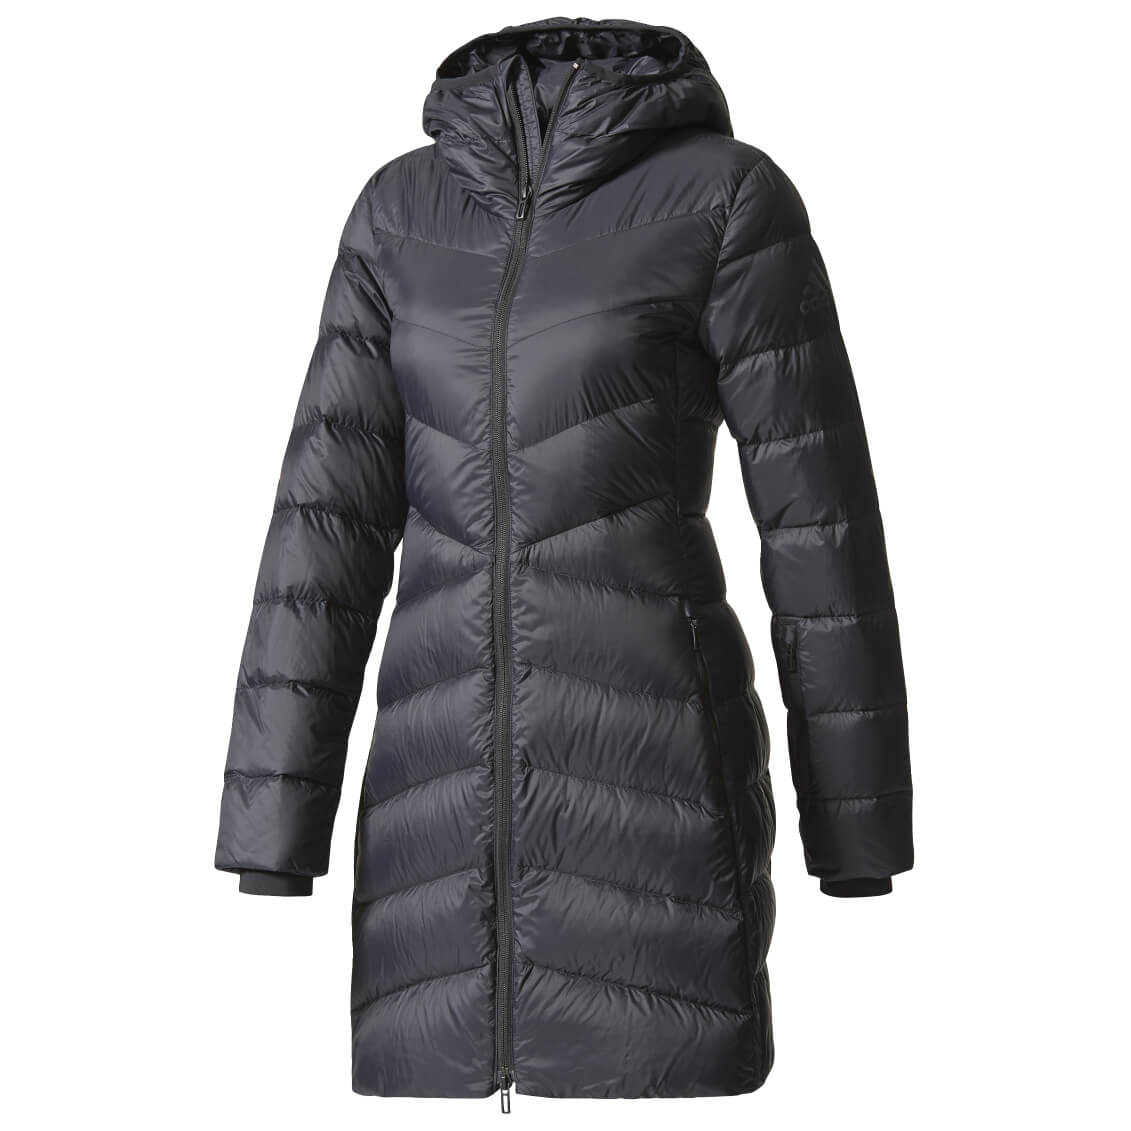 Adidas Climawarm Nuvic Jacket - Coat Women s   Free EU Delivery ... c3f471d584